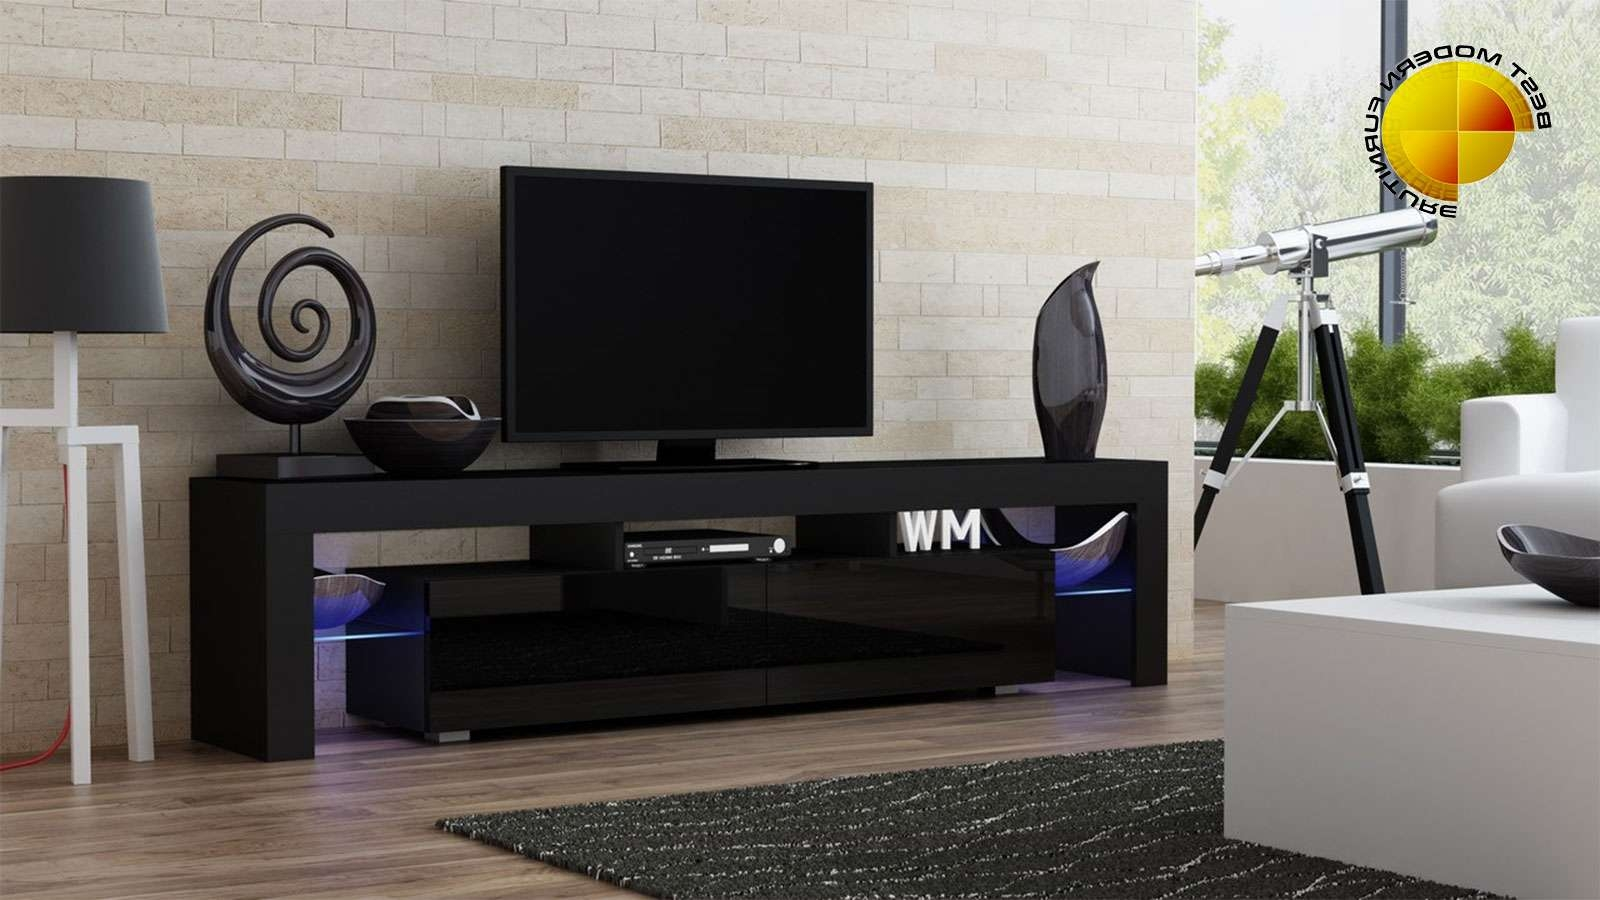 Modern Tv Stand 200Cm High Gloss Cabinet Rgb Led Lights Black Unit Intended For White And Black Tv Stands (View 9 of 15)